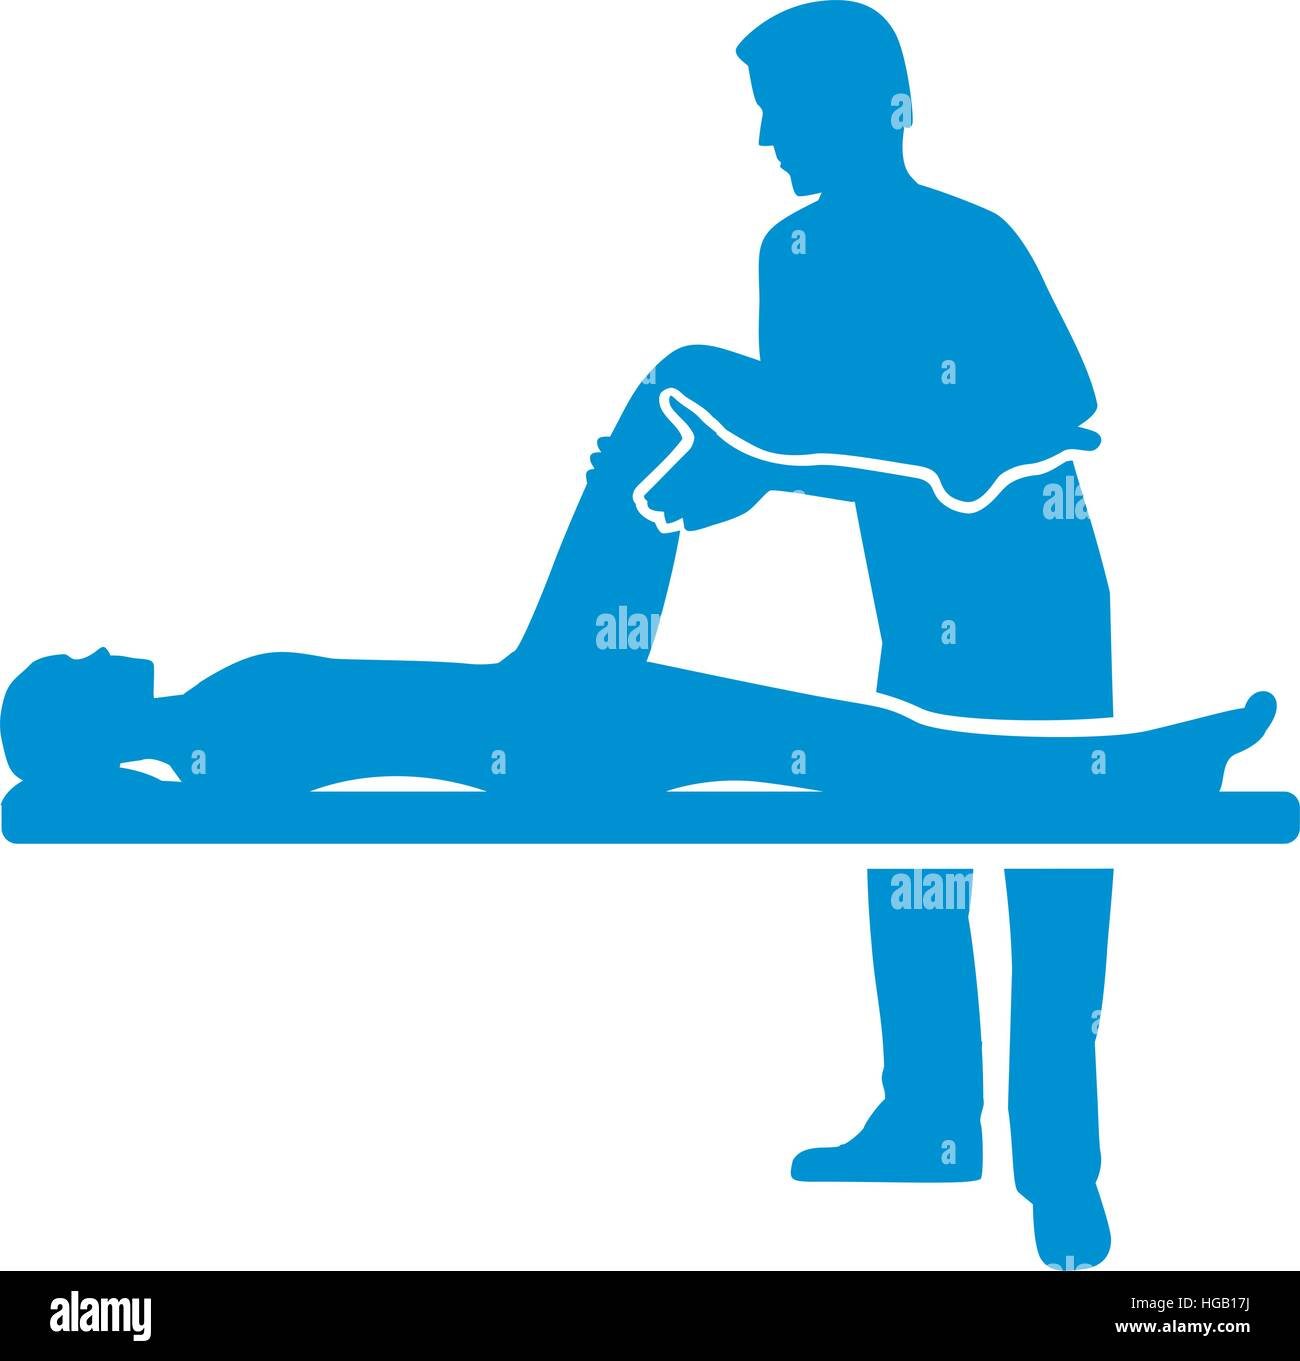 Cartoon physical therapy - Physical Therapy Silhouette Stock Image